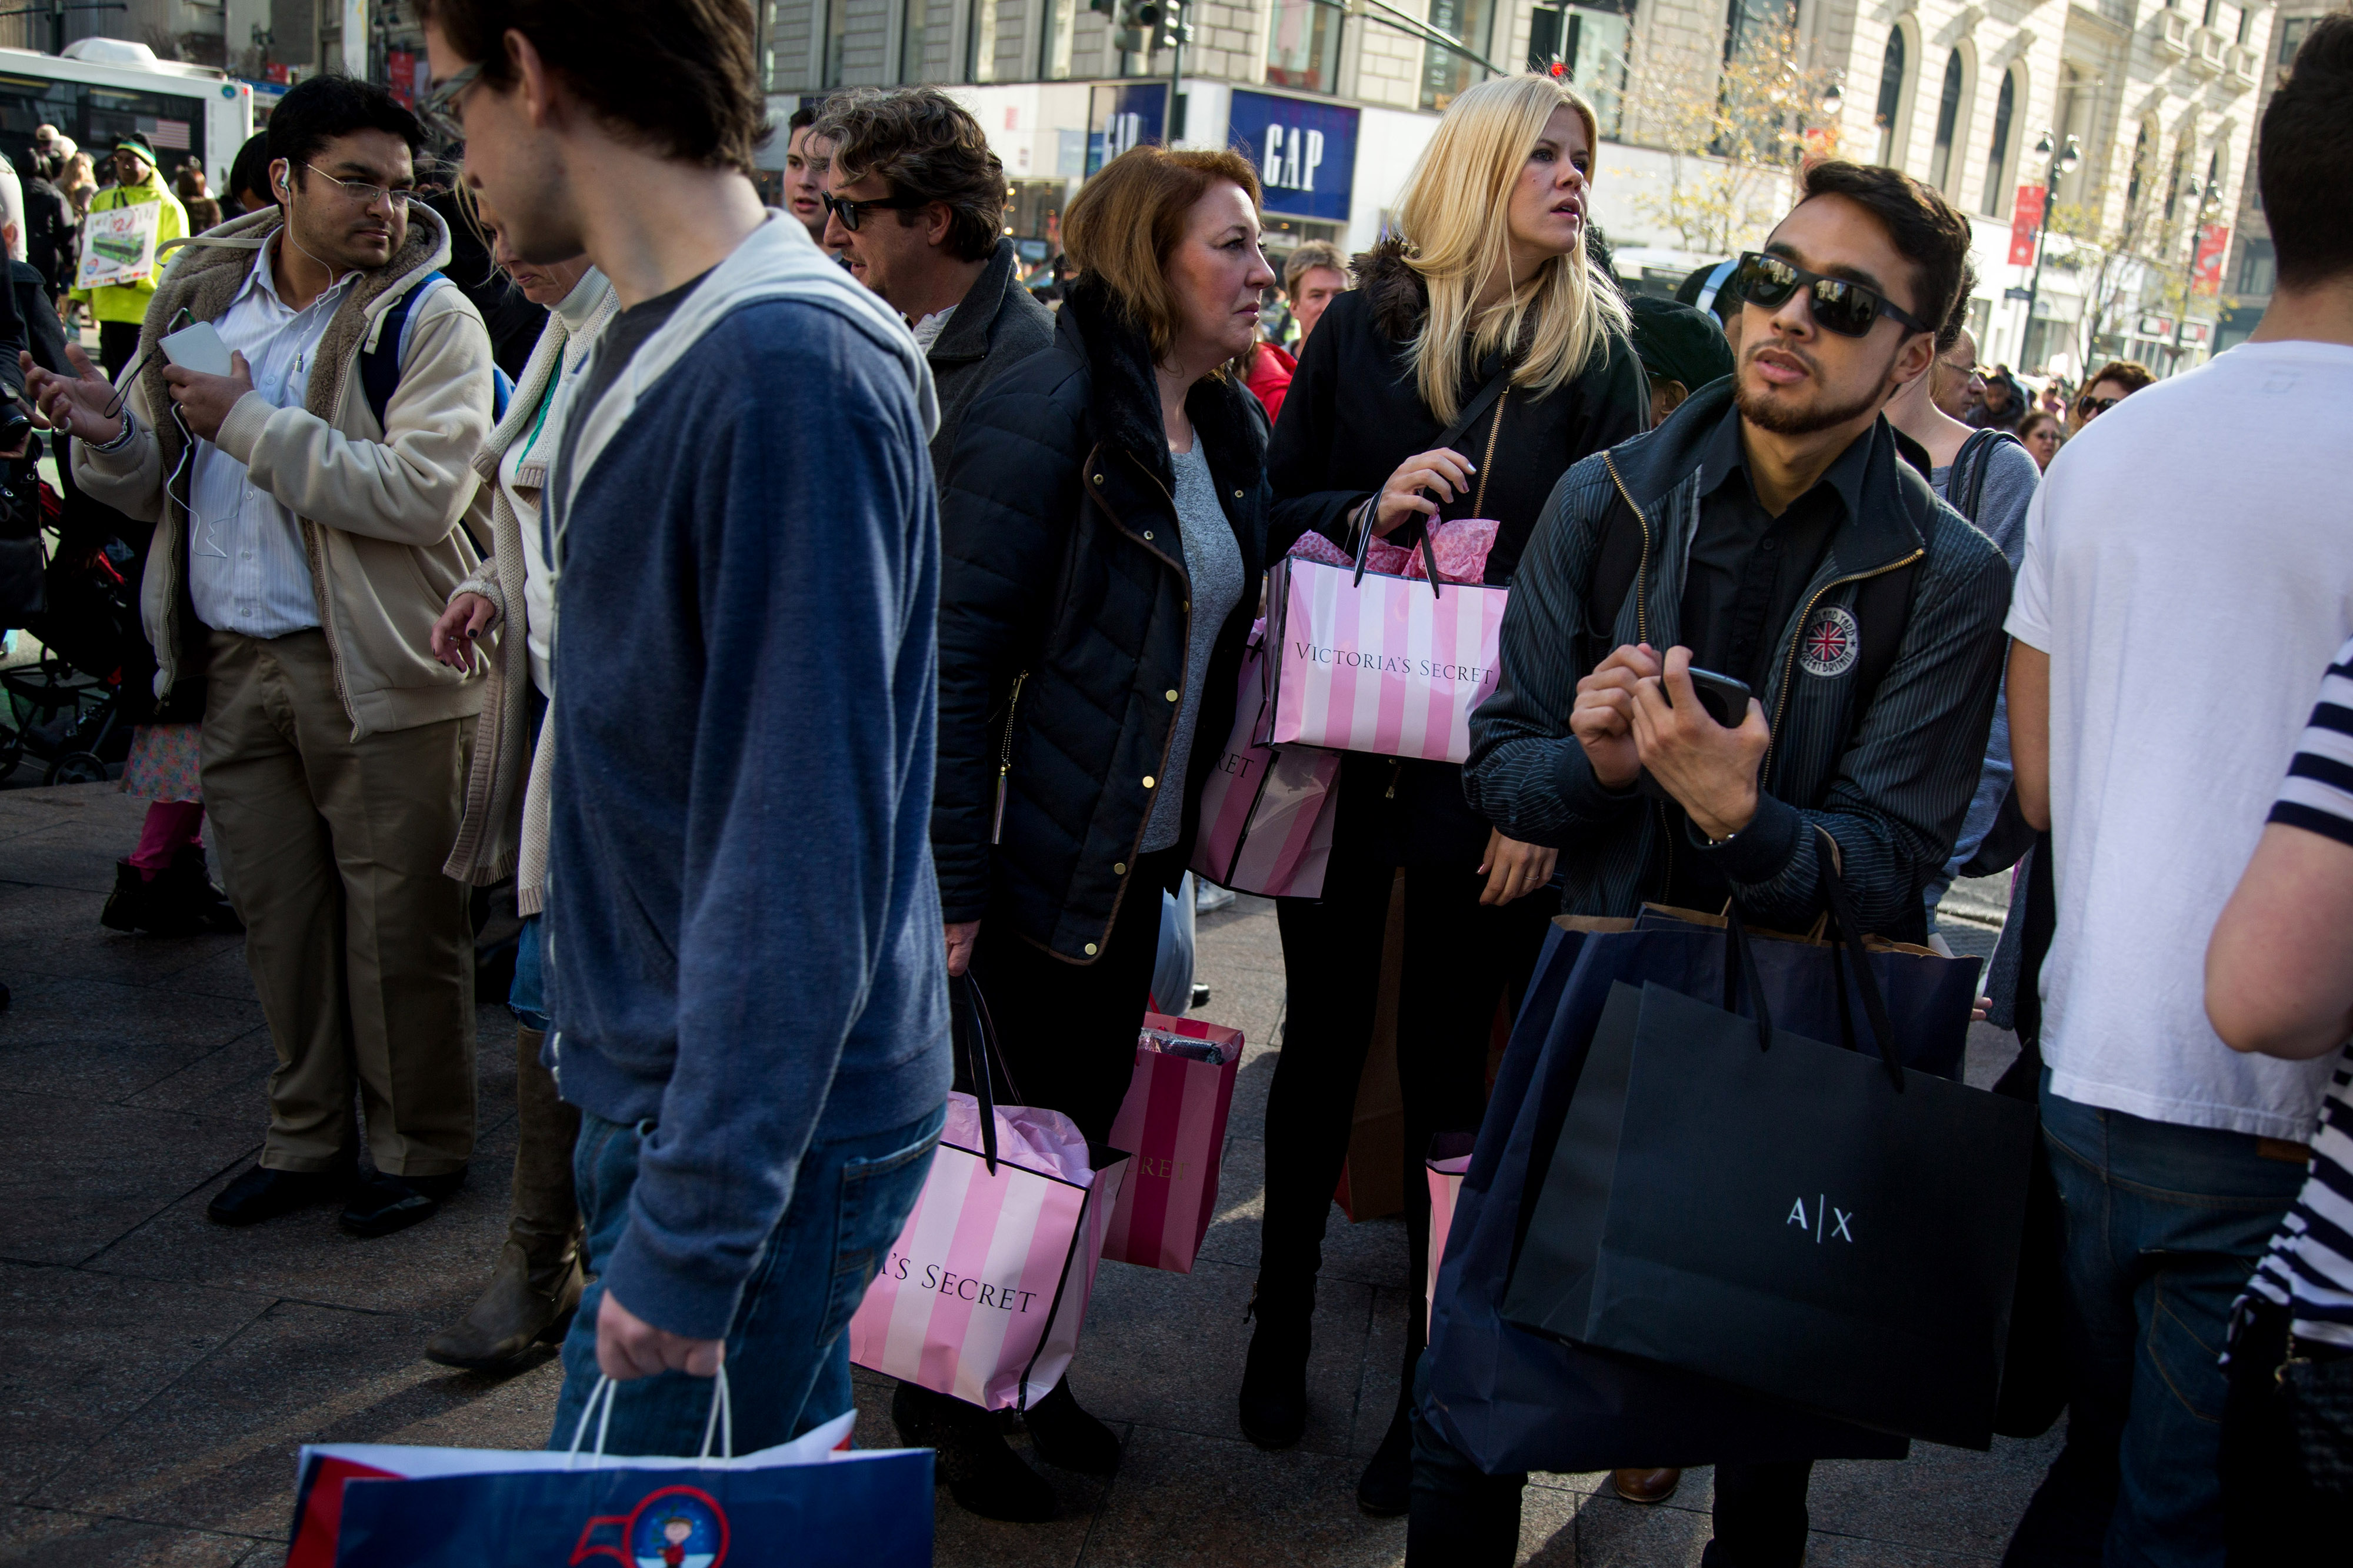 Pedestrians carry shopping bags on Black Friday through Herald Square in New York, U.S., on Friday, Nov. 27, 2015.